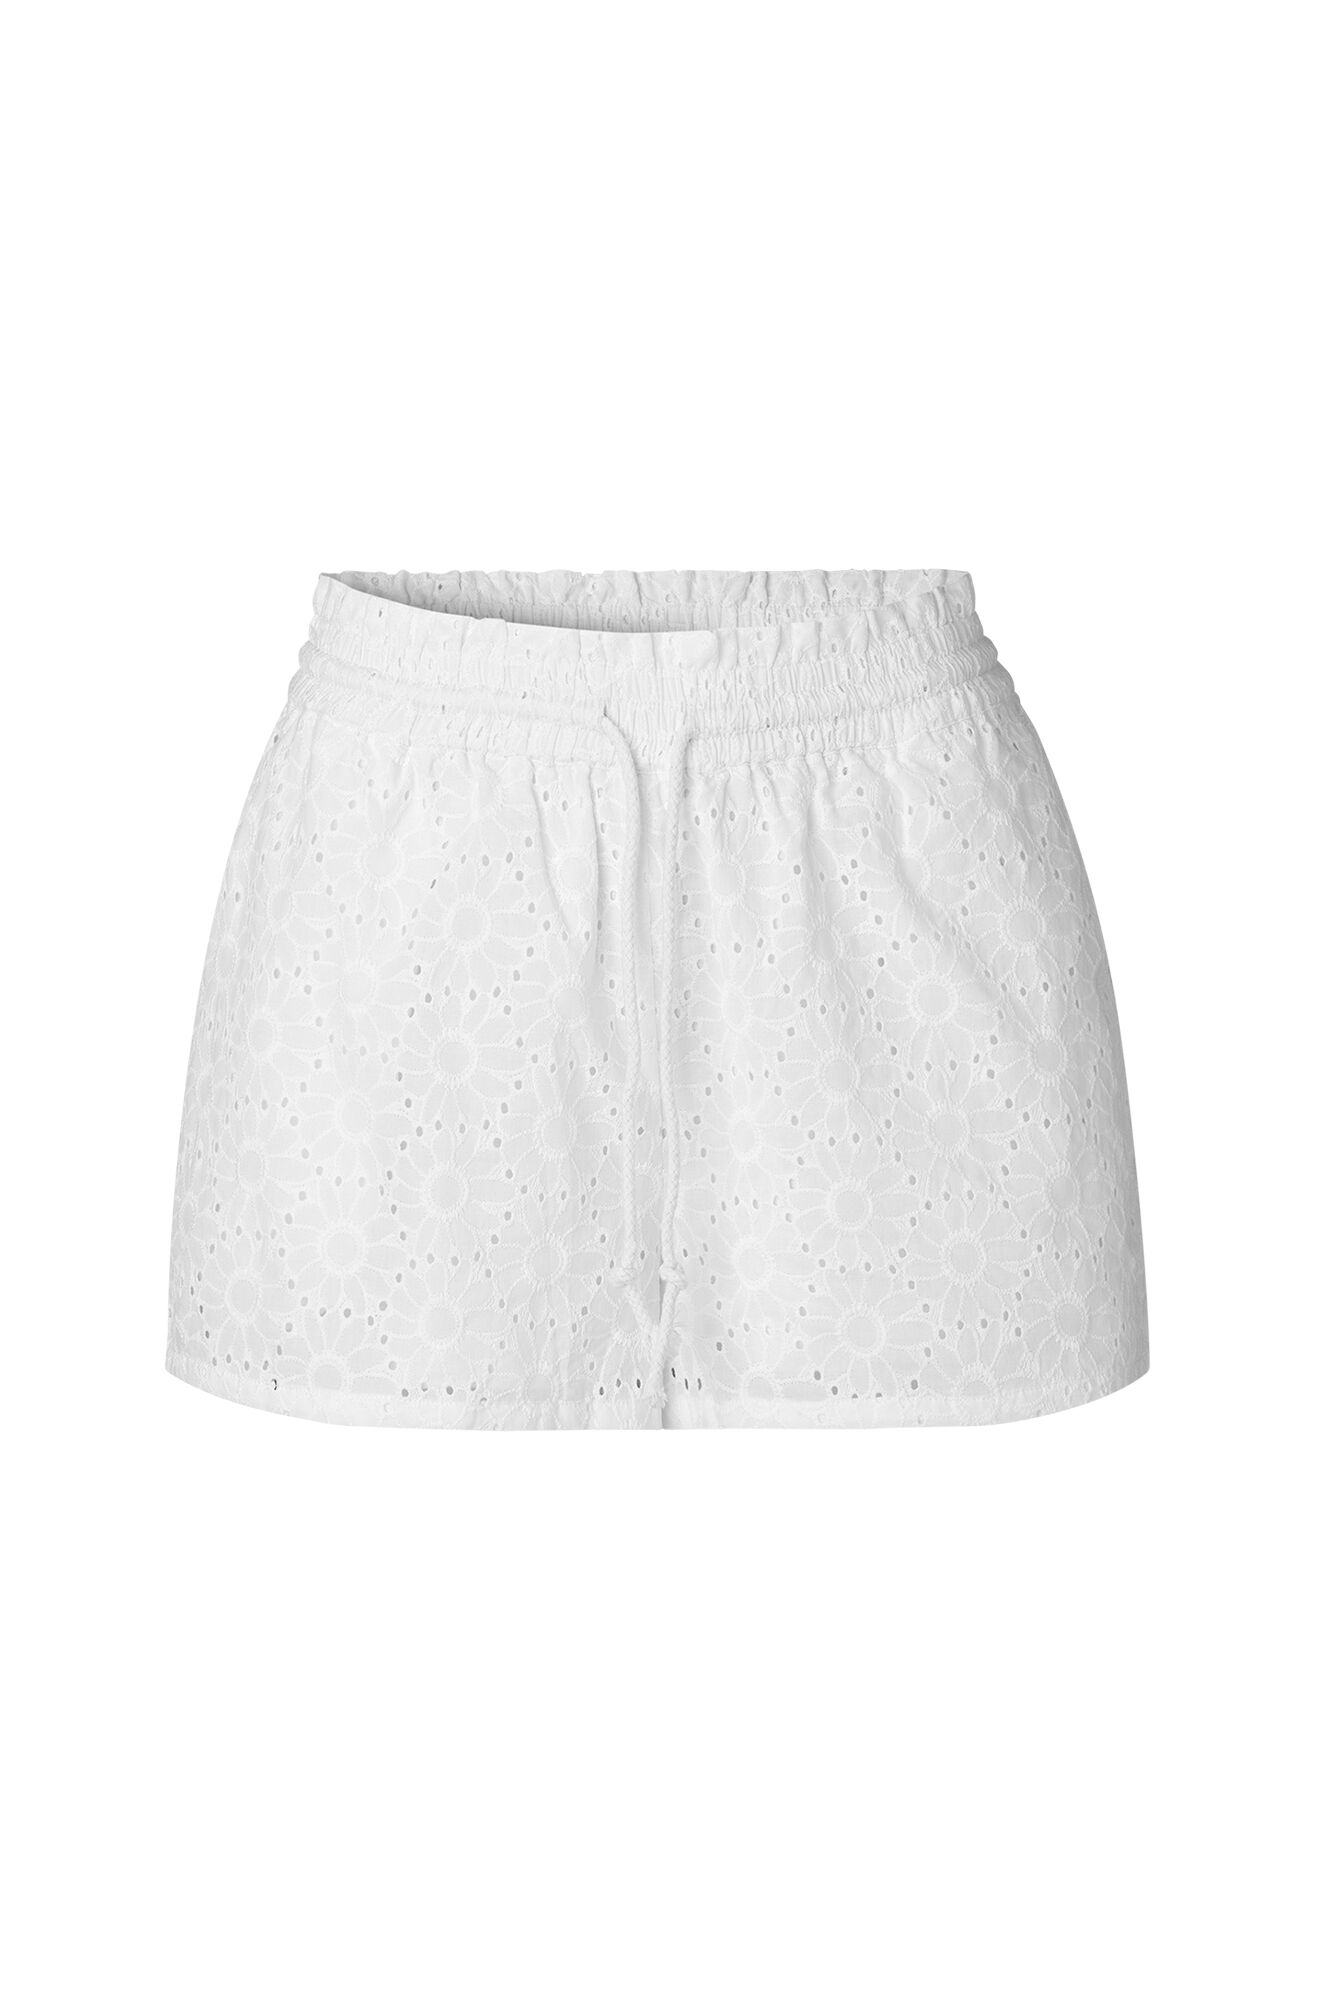 ENEAGLE SHORTS 6443, WHITE